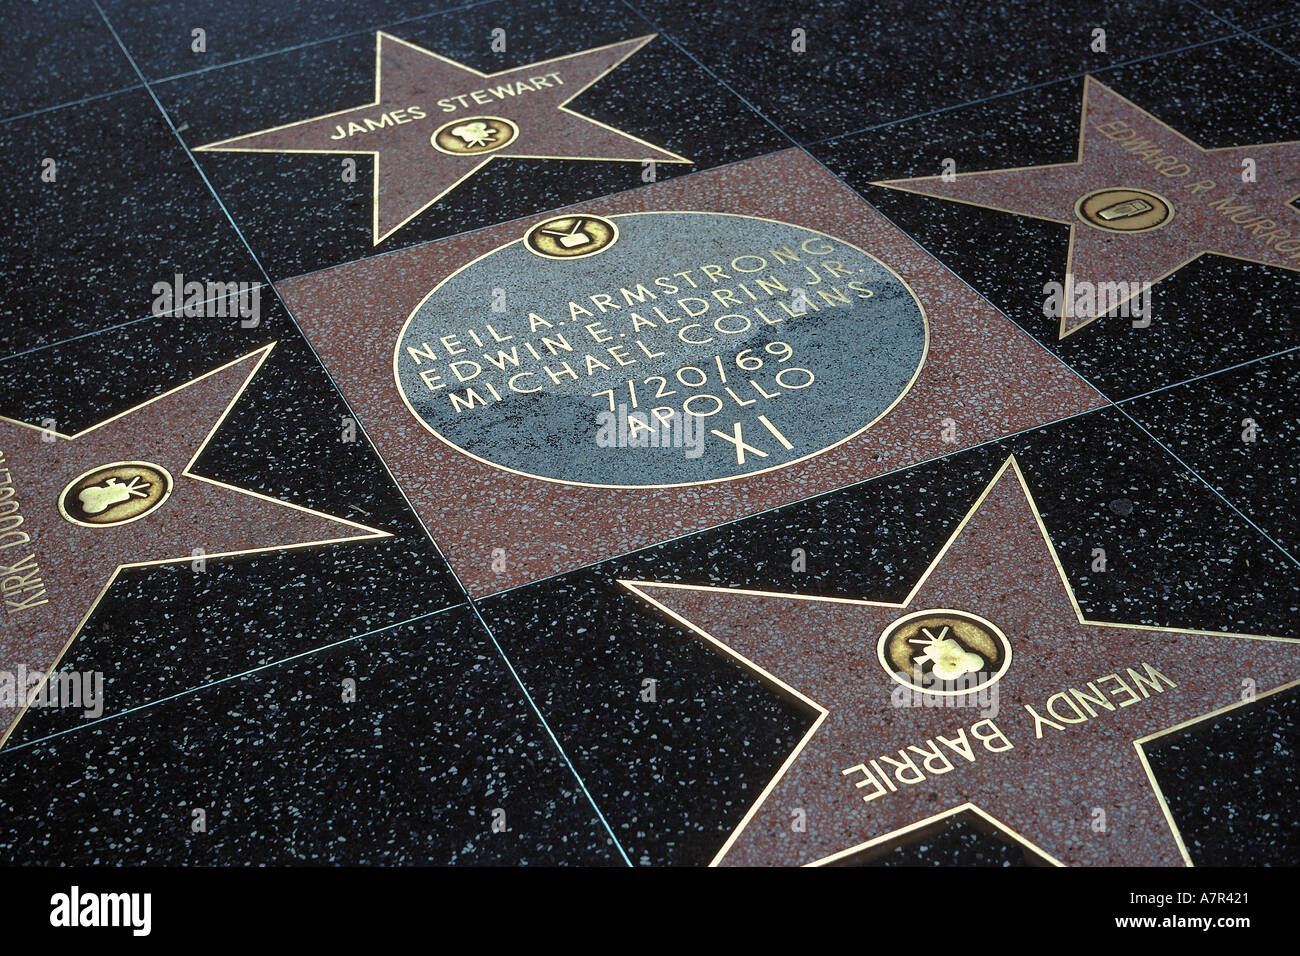 Stars commemorating the first moon landing by the Apollo ...